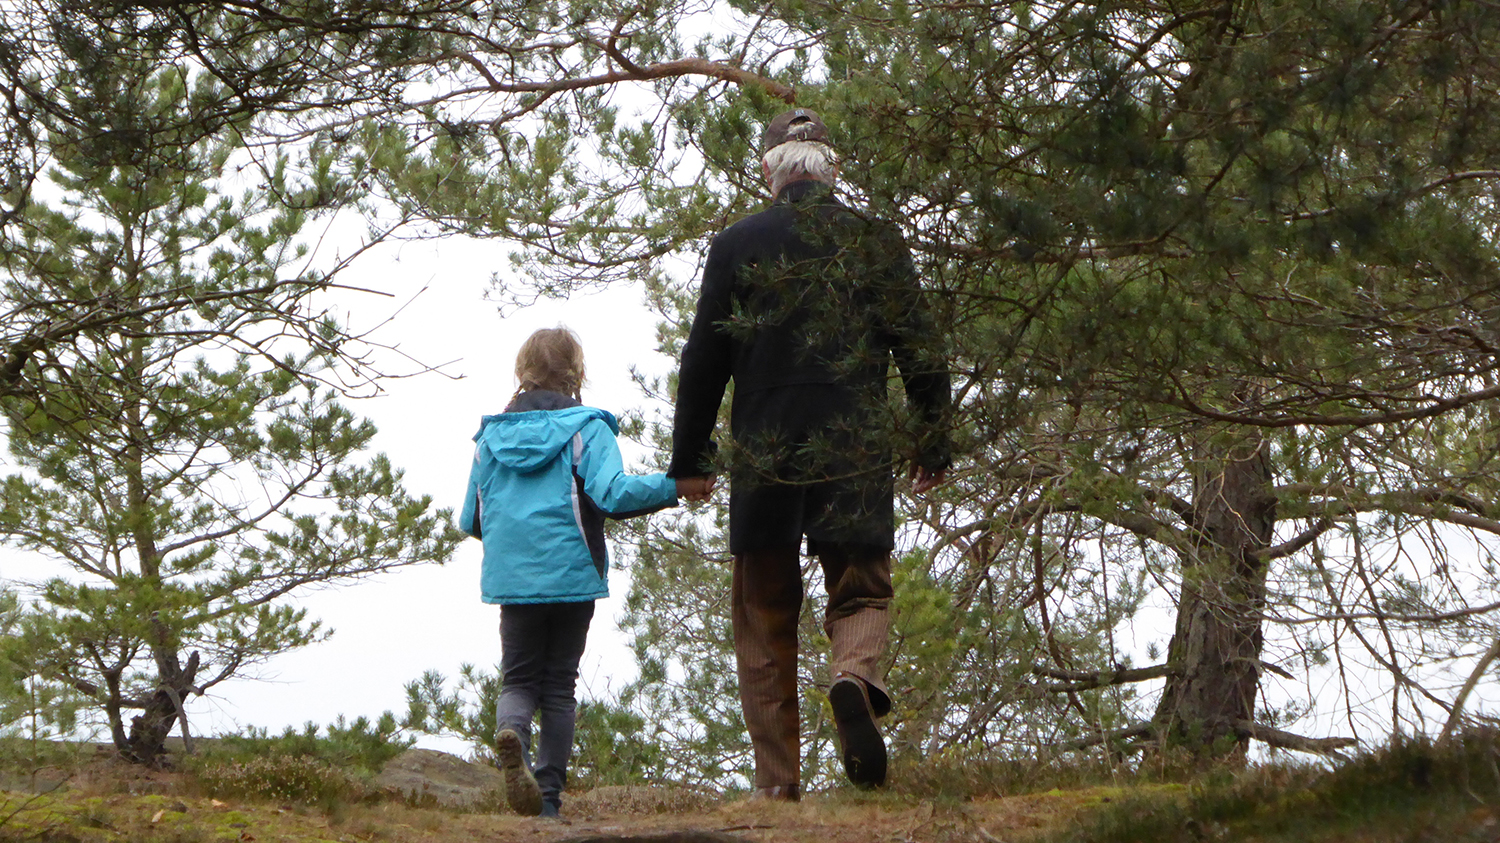 Grandfather and granddaughter walking together through a wooded path.